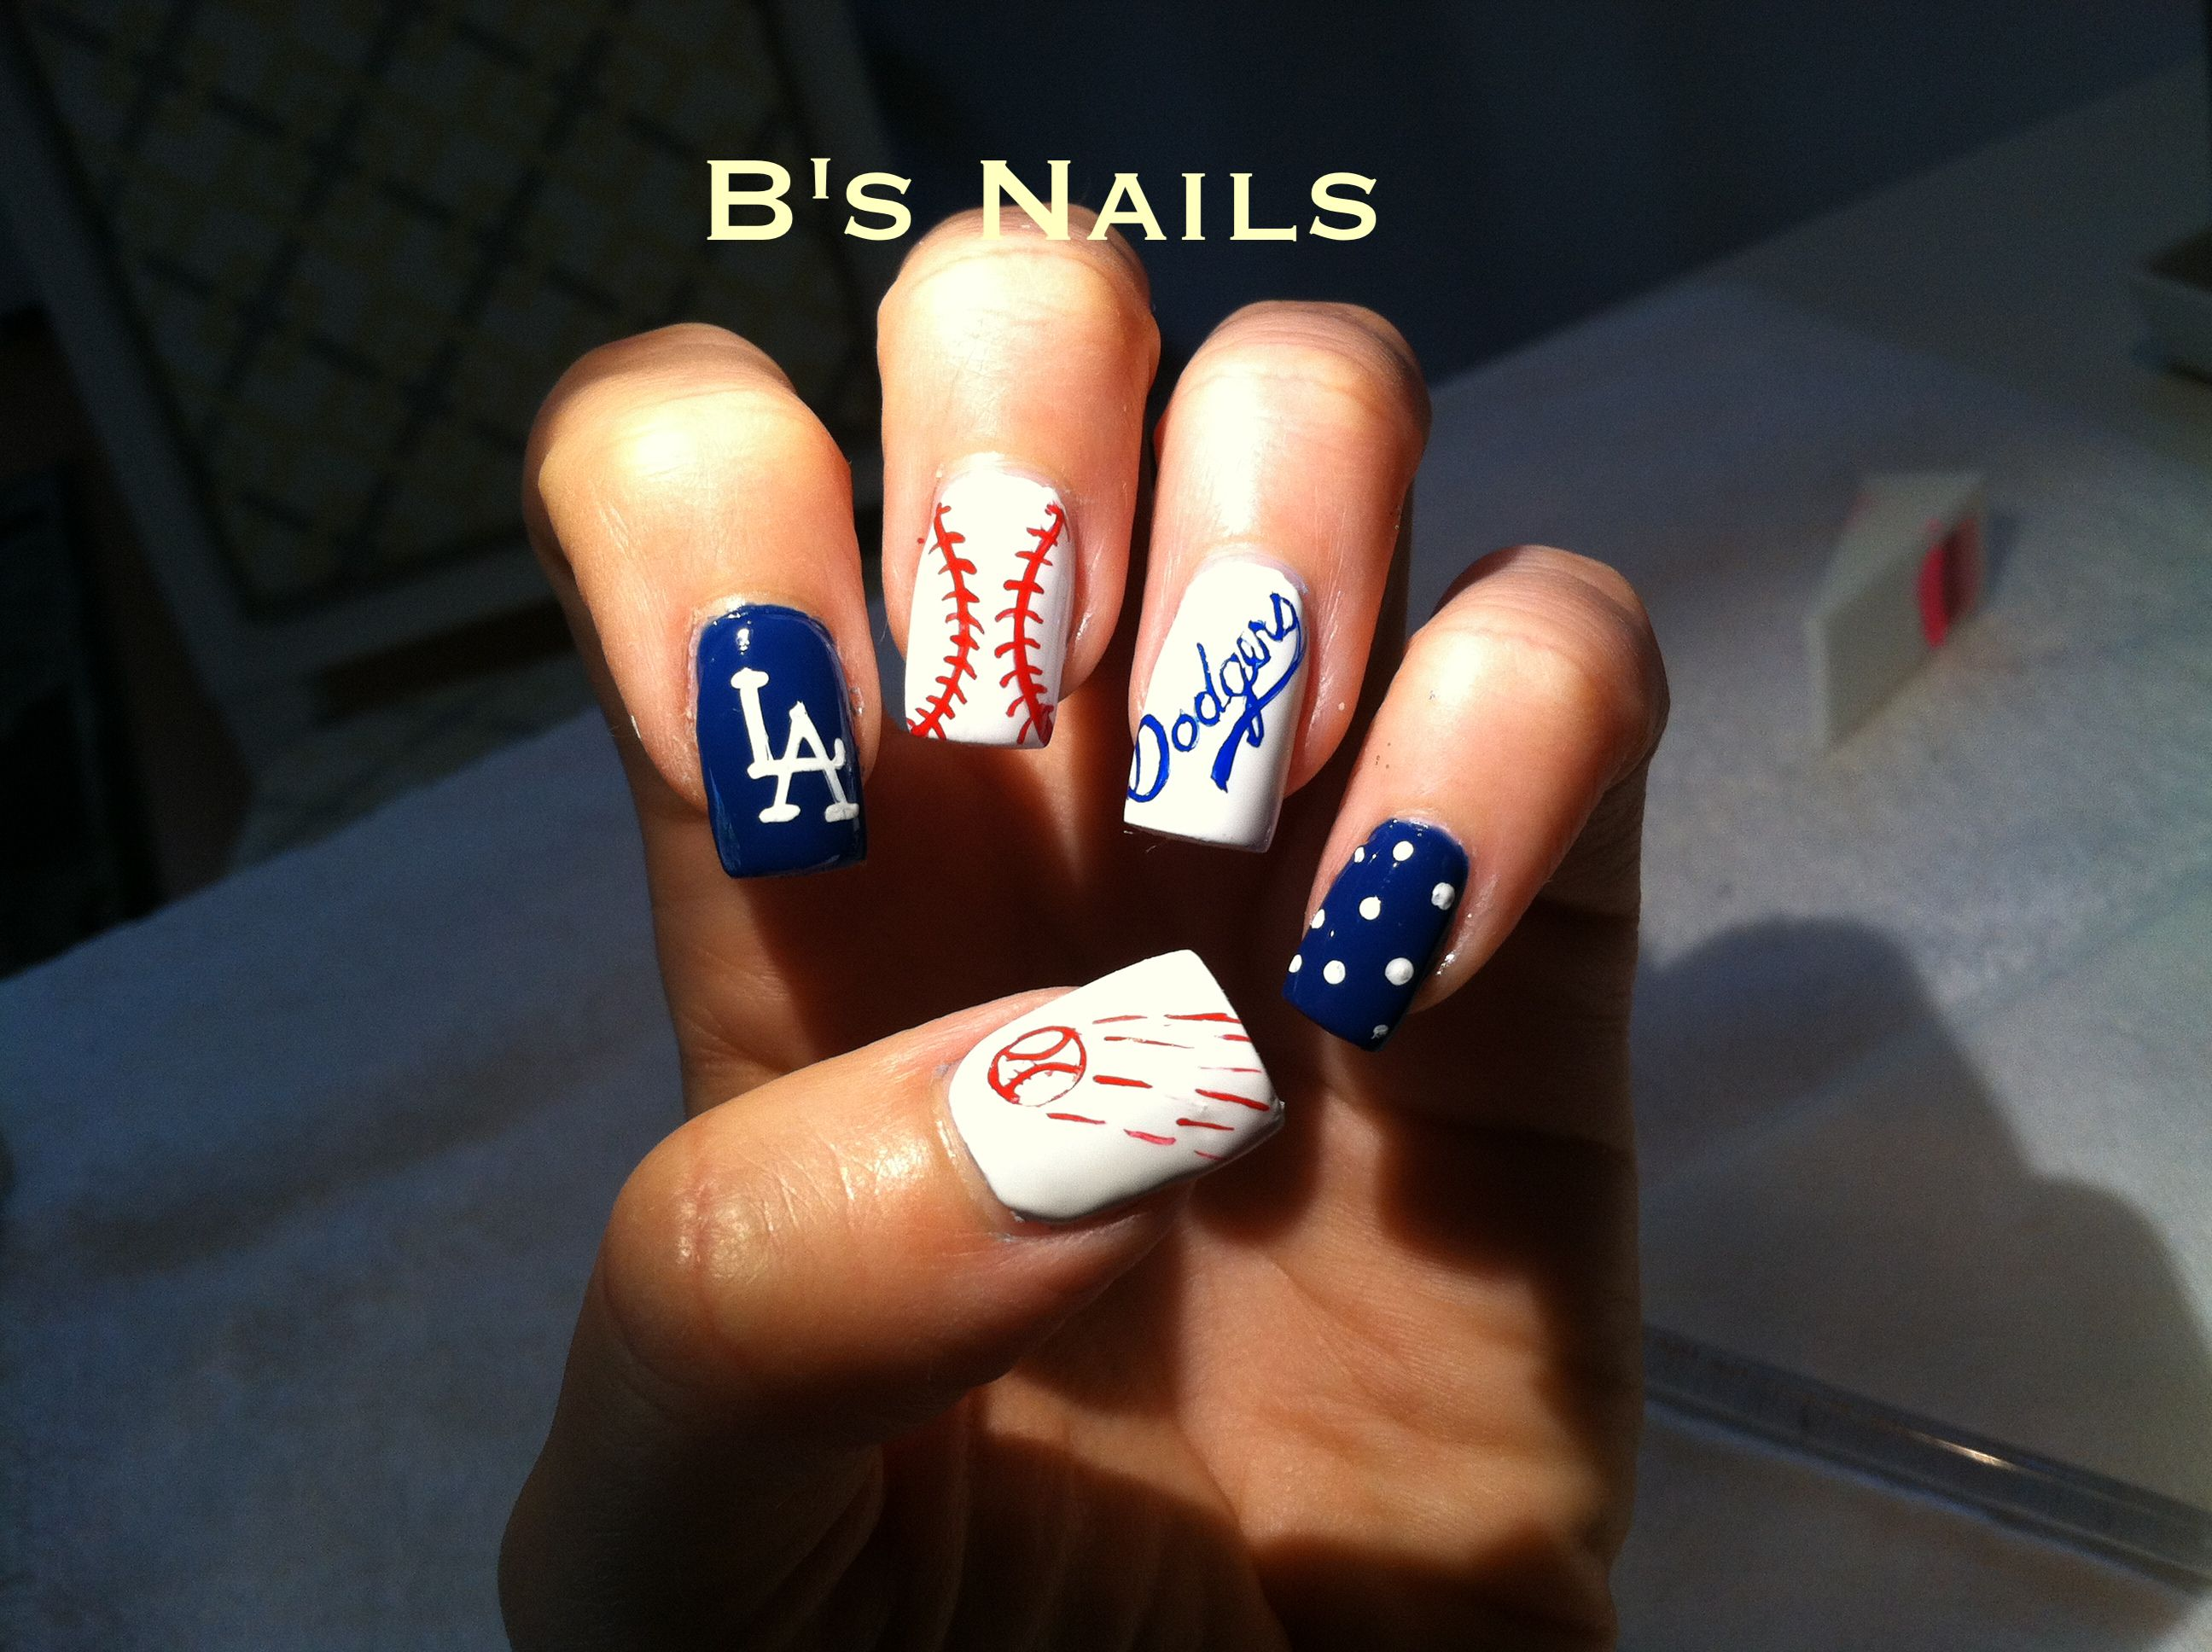 Dodgers Bs Nails Similar Style Just As Green And Gold Instead